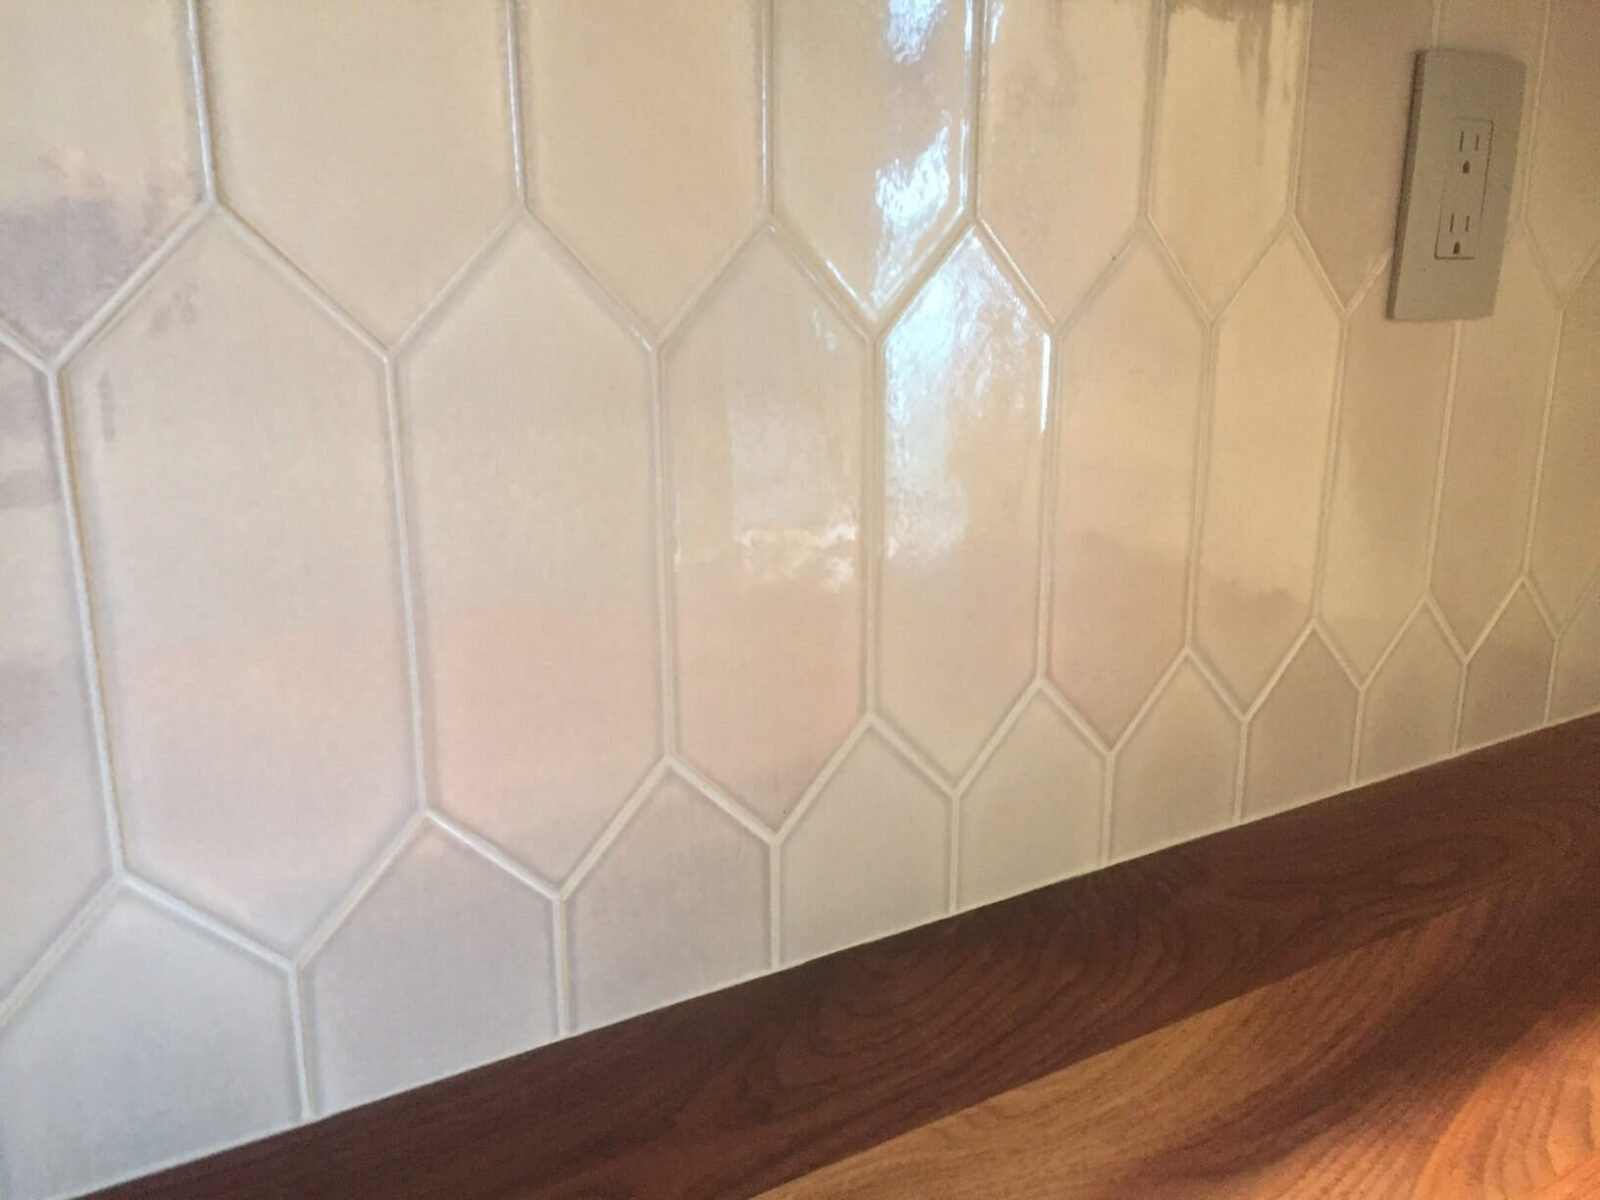 Tile backsplash | West Michigan Carpet Center